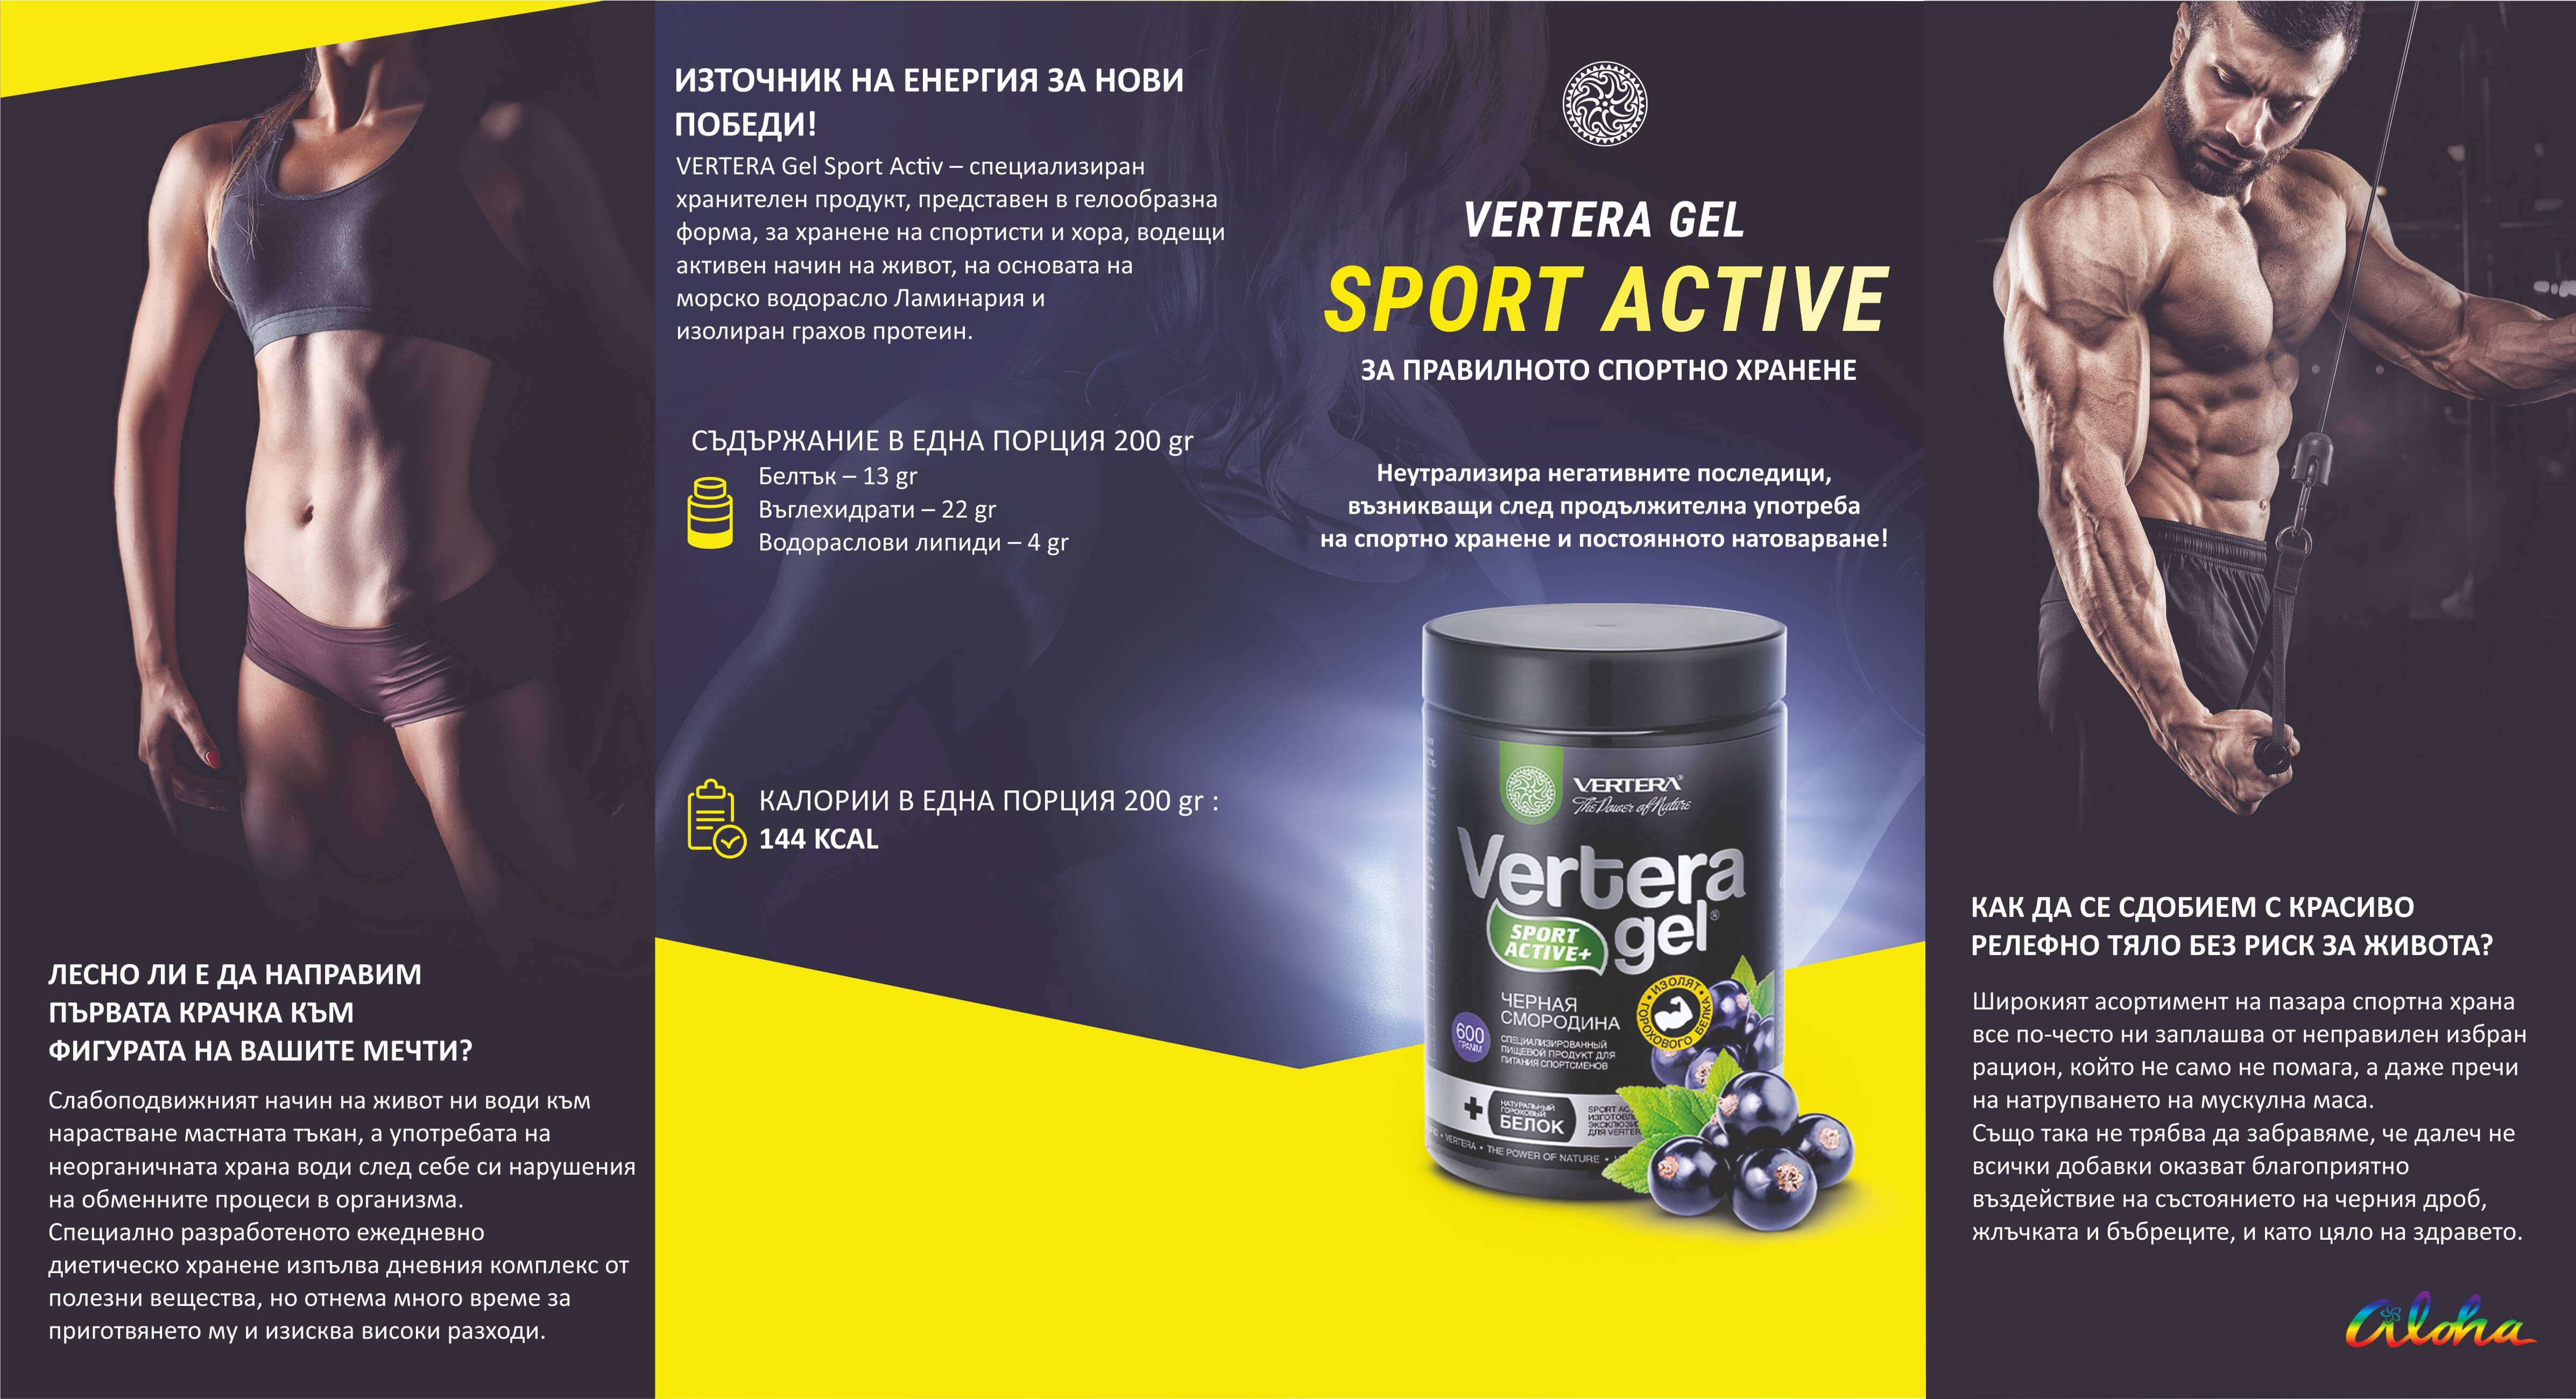 Vertera Gel Sport Active